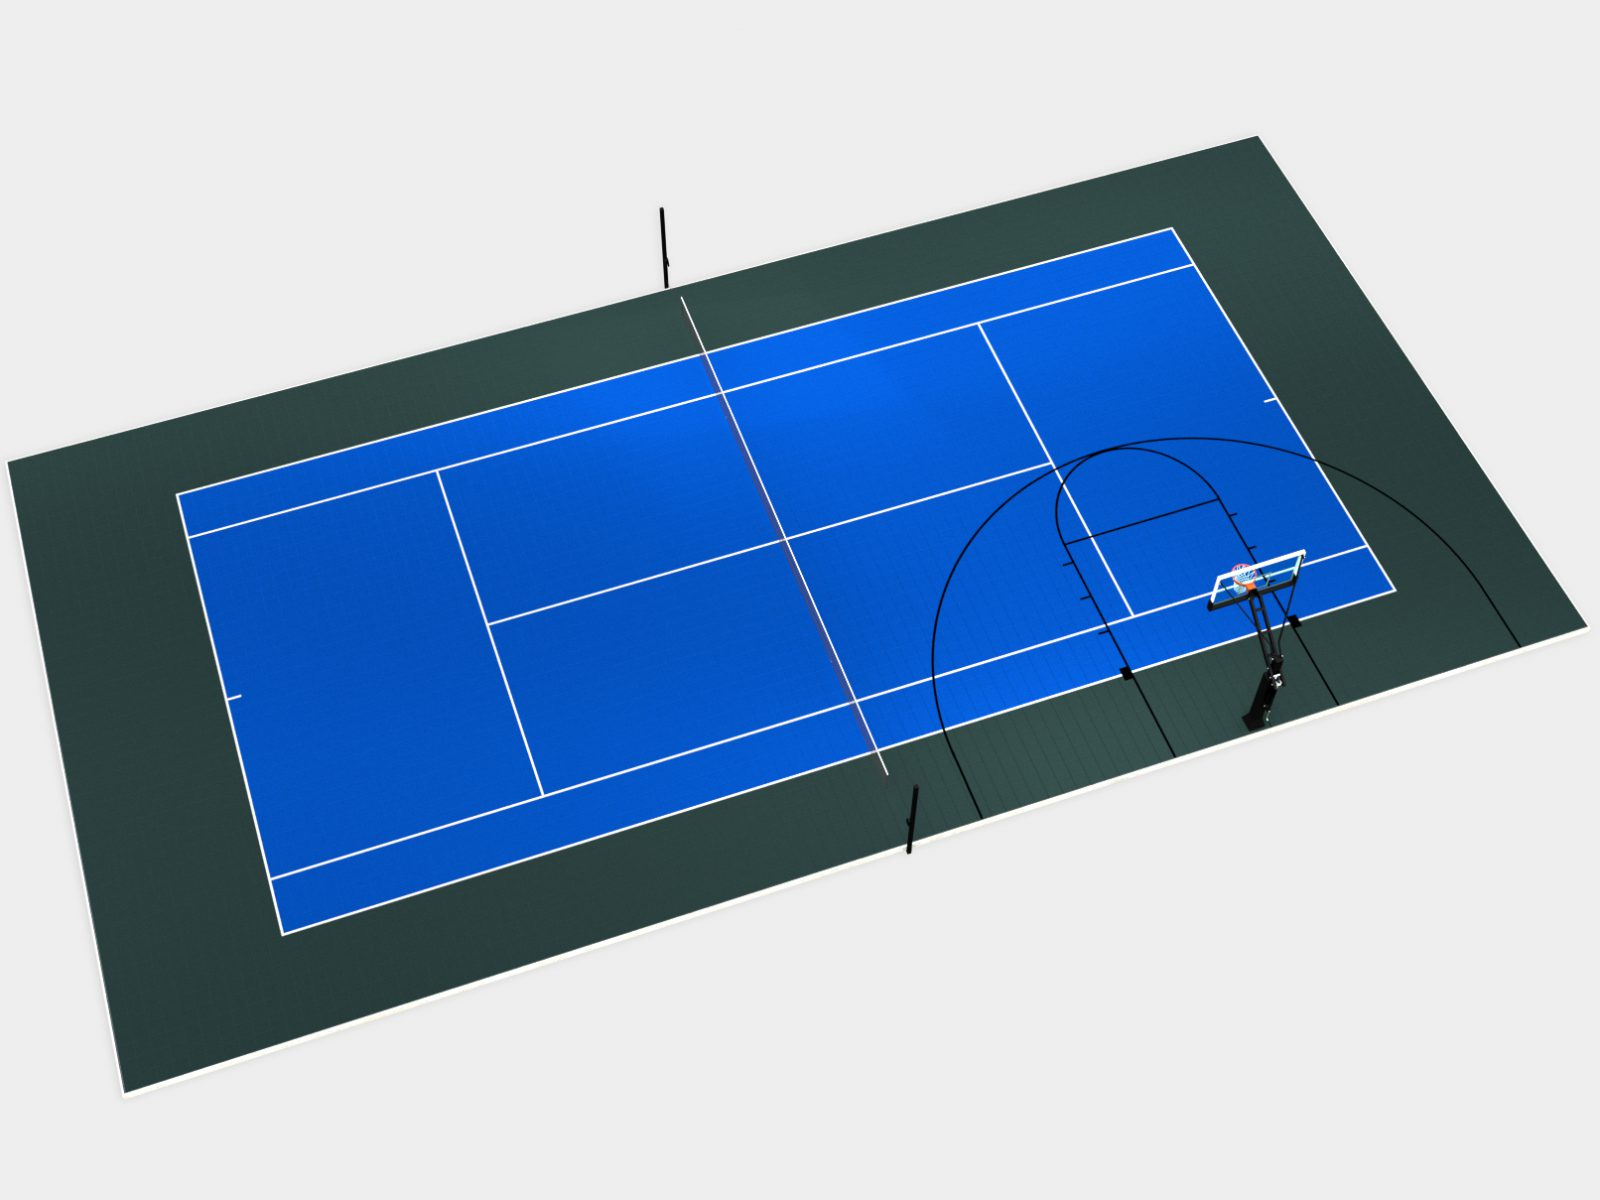 100' x 50' Multi-Court with tennis and half-court basketball